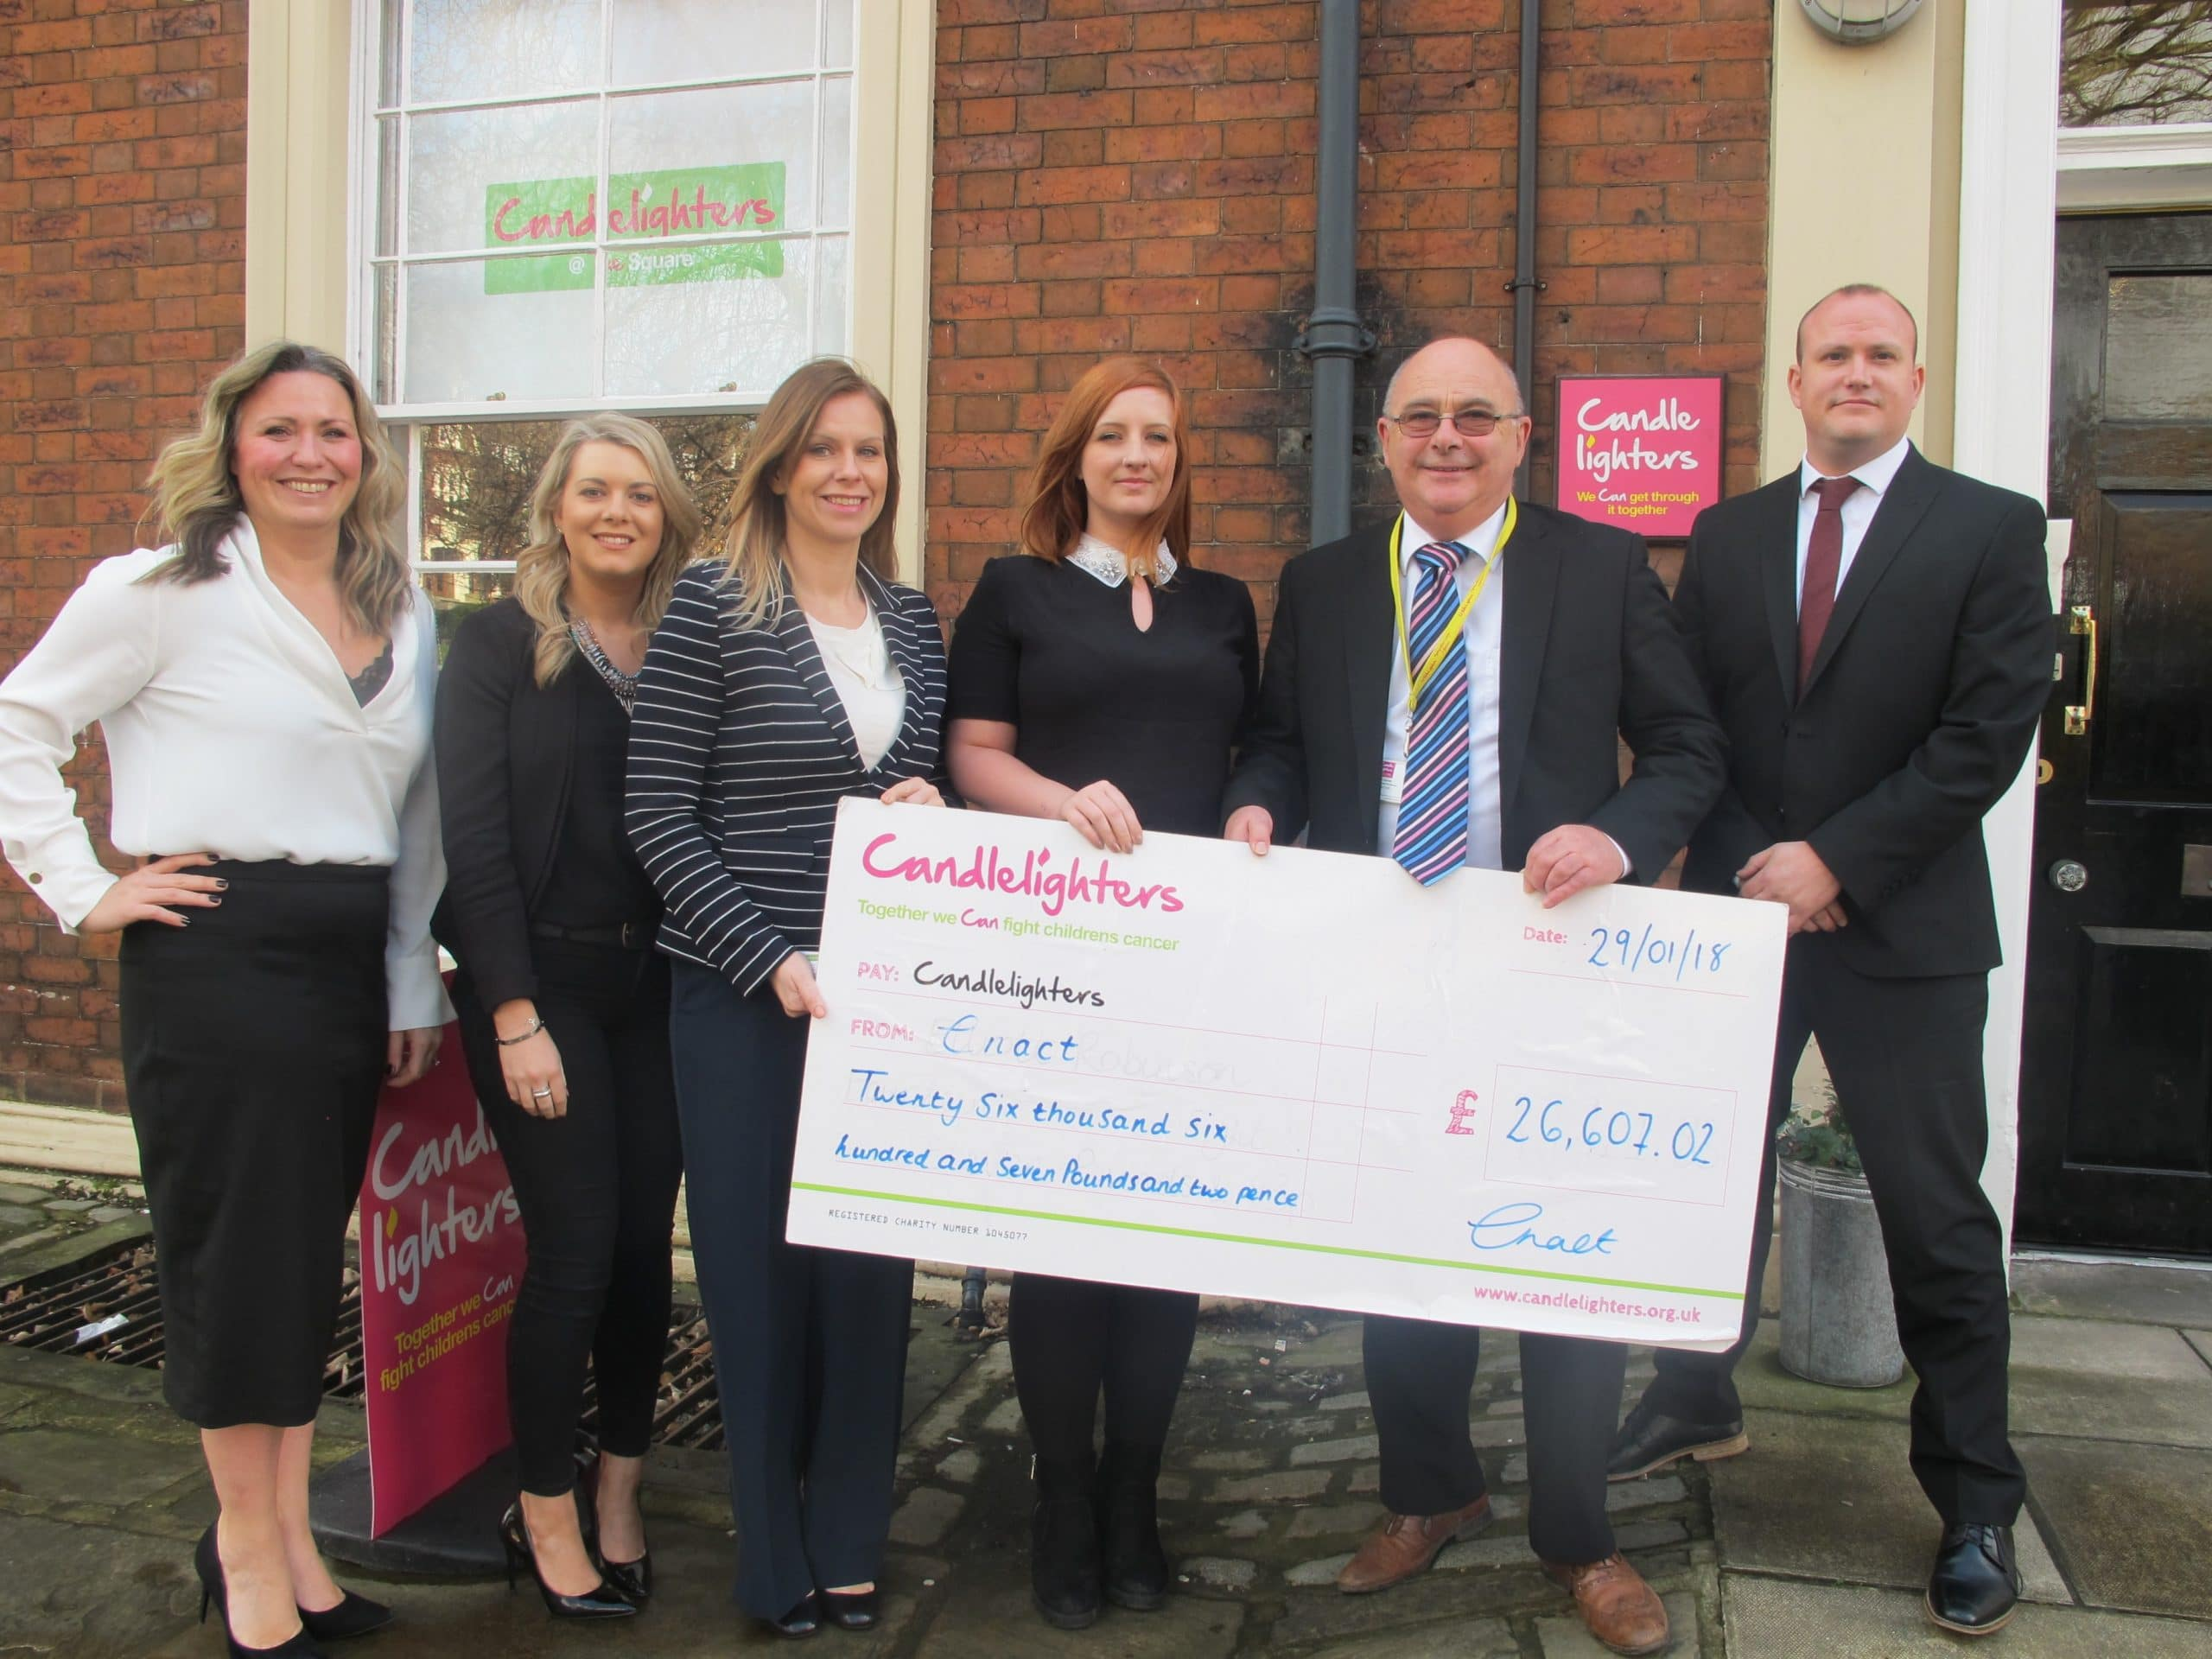 Celebrating Home Candle Fundraiser >> enact raise £26,607 for children's cancer charity Candlelighters